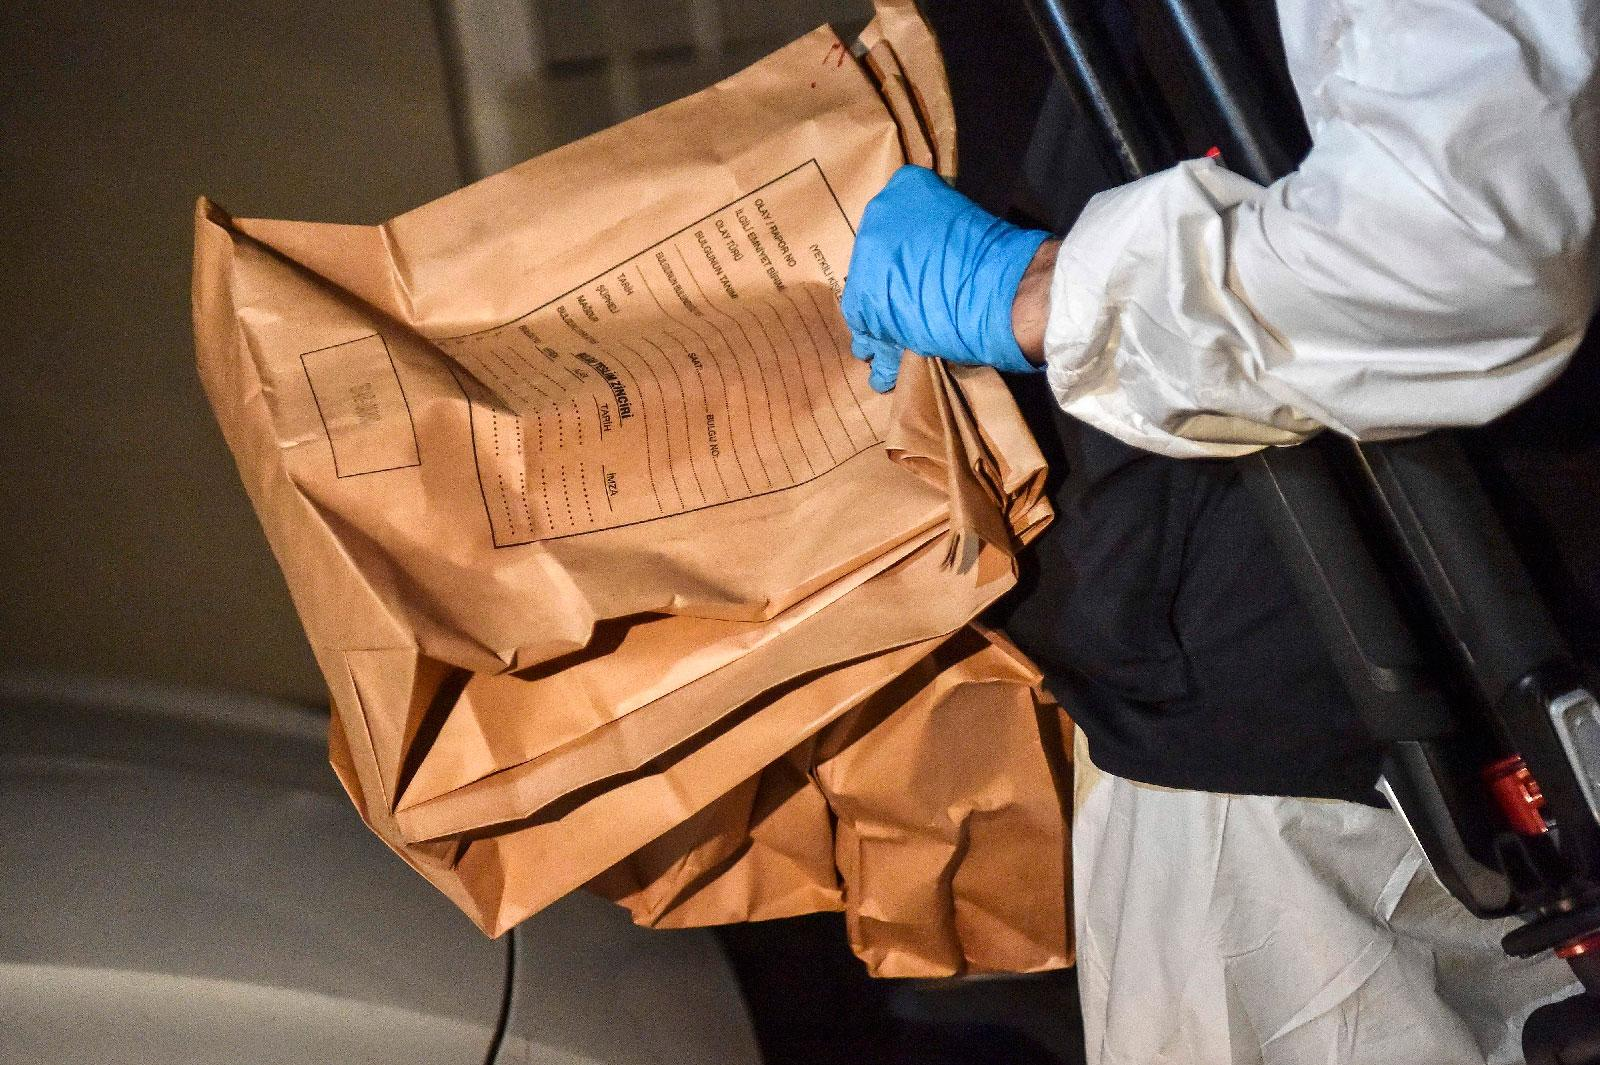 A Turkish forensic police officer carries evidence packs while he leaves the Saudi Arabian Consulate on October 18, 2018 in Istanbul.